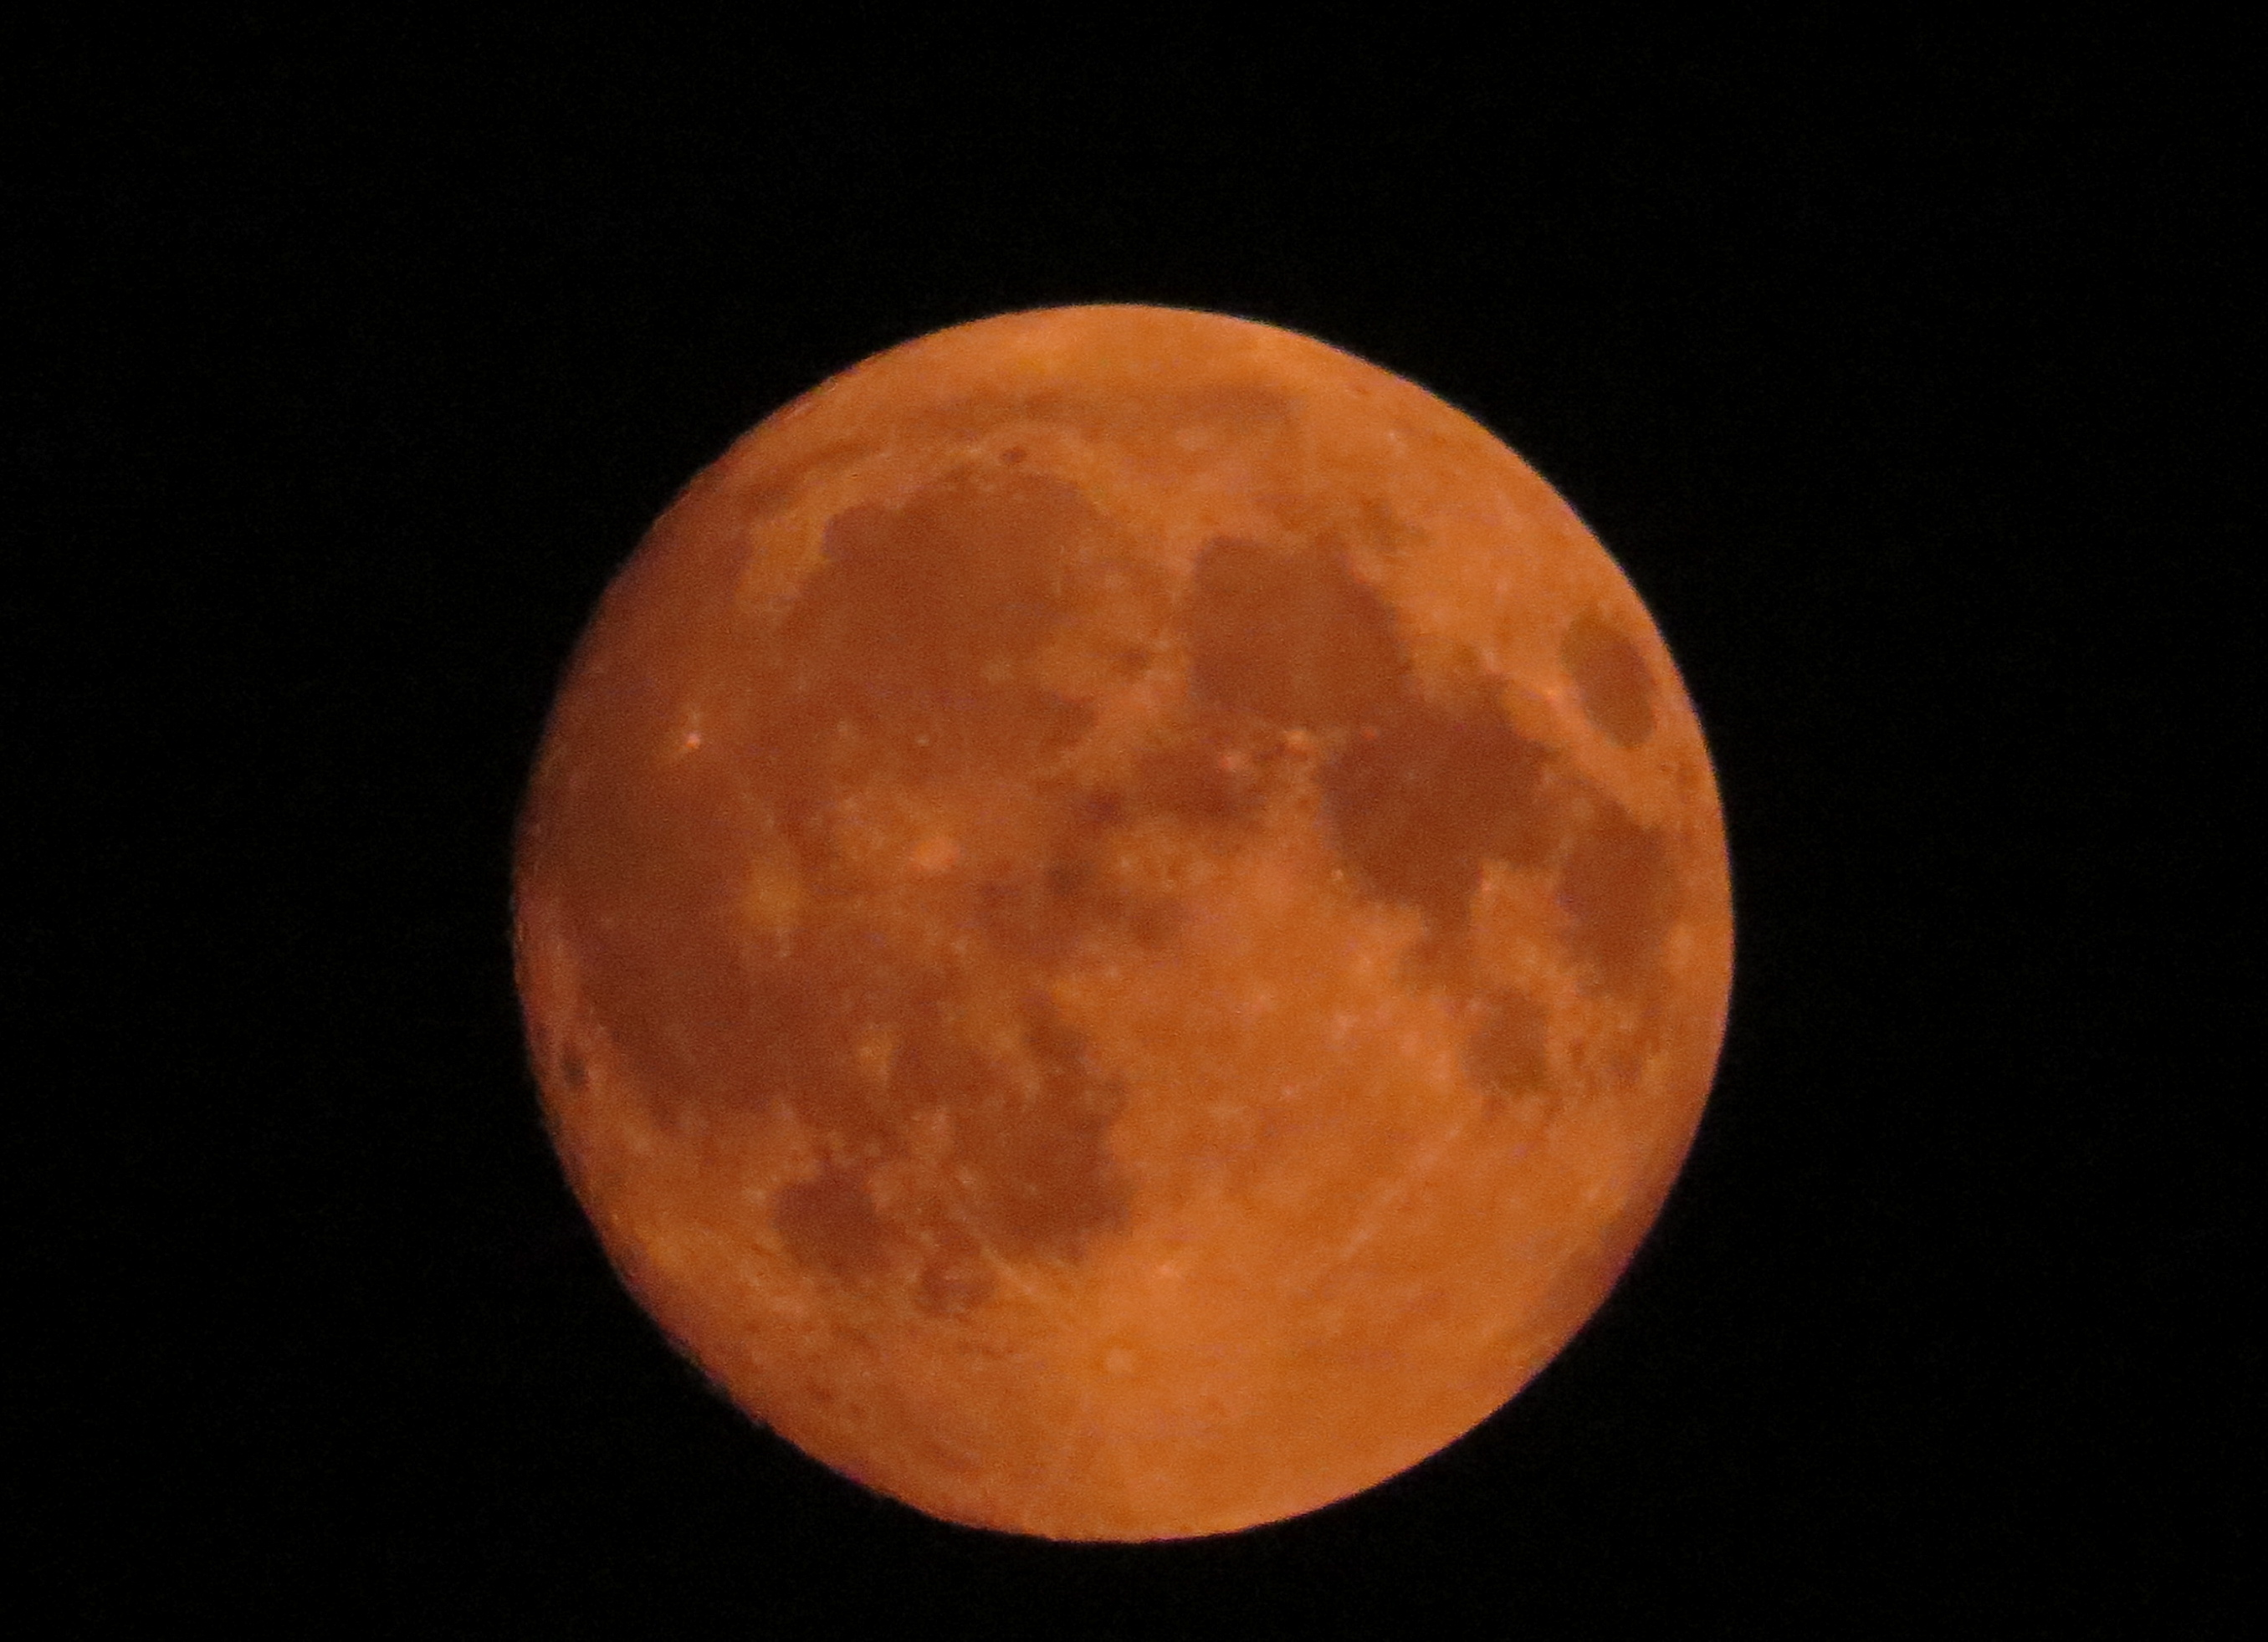 red moon vedano - photo #13